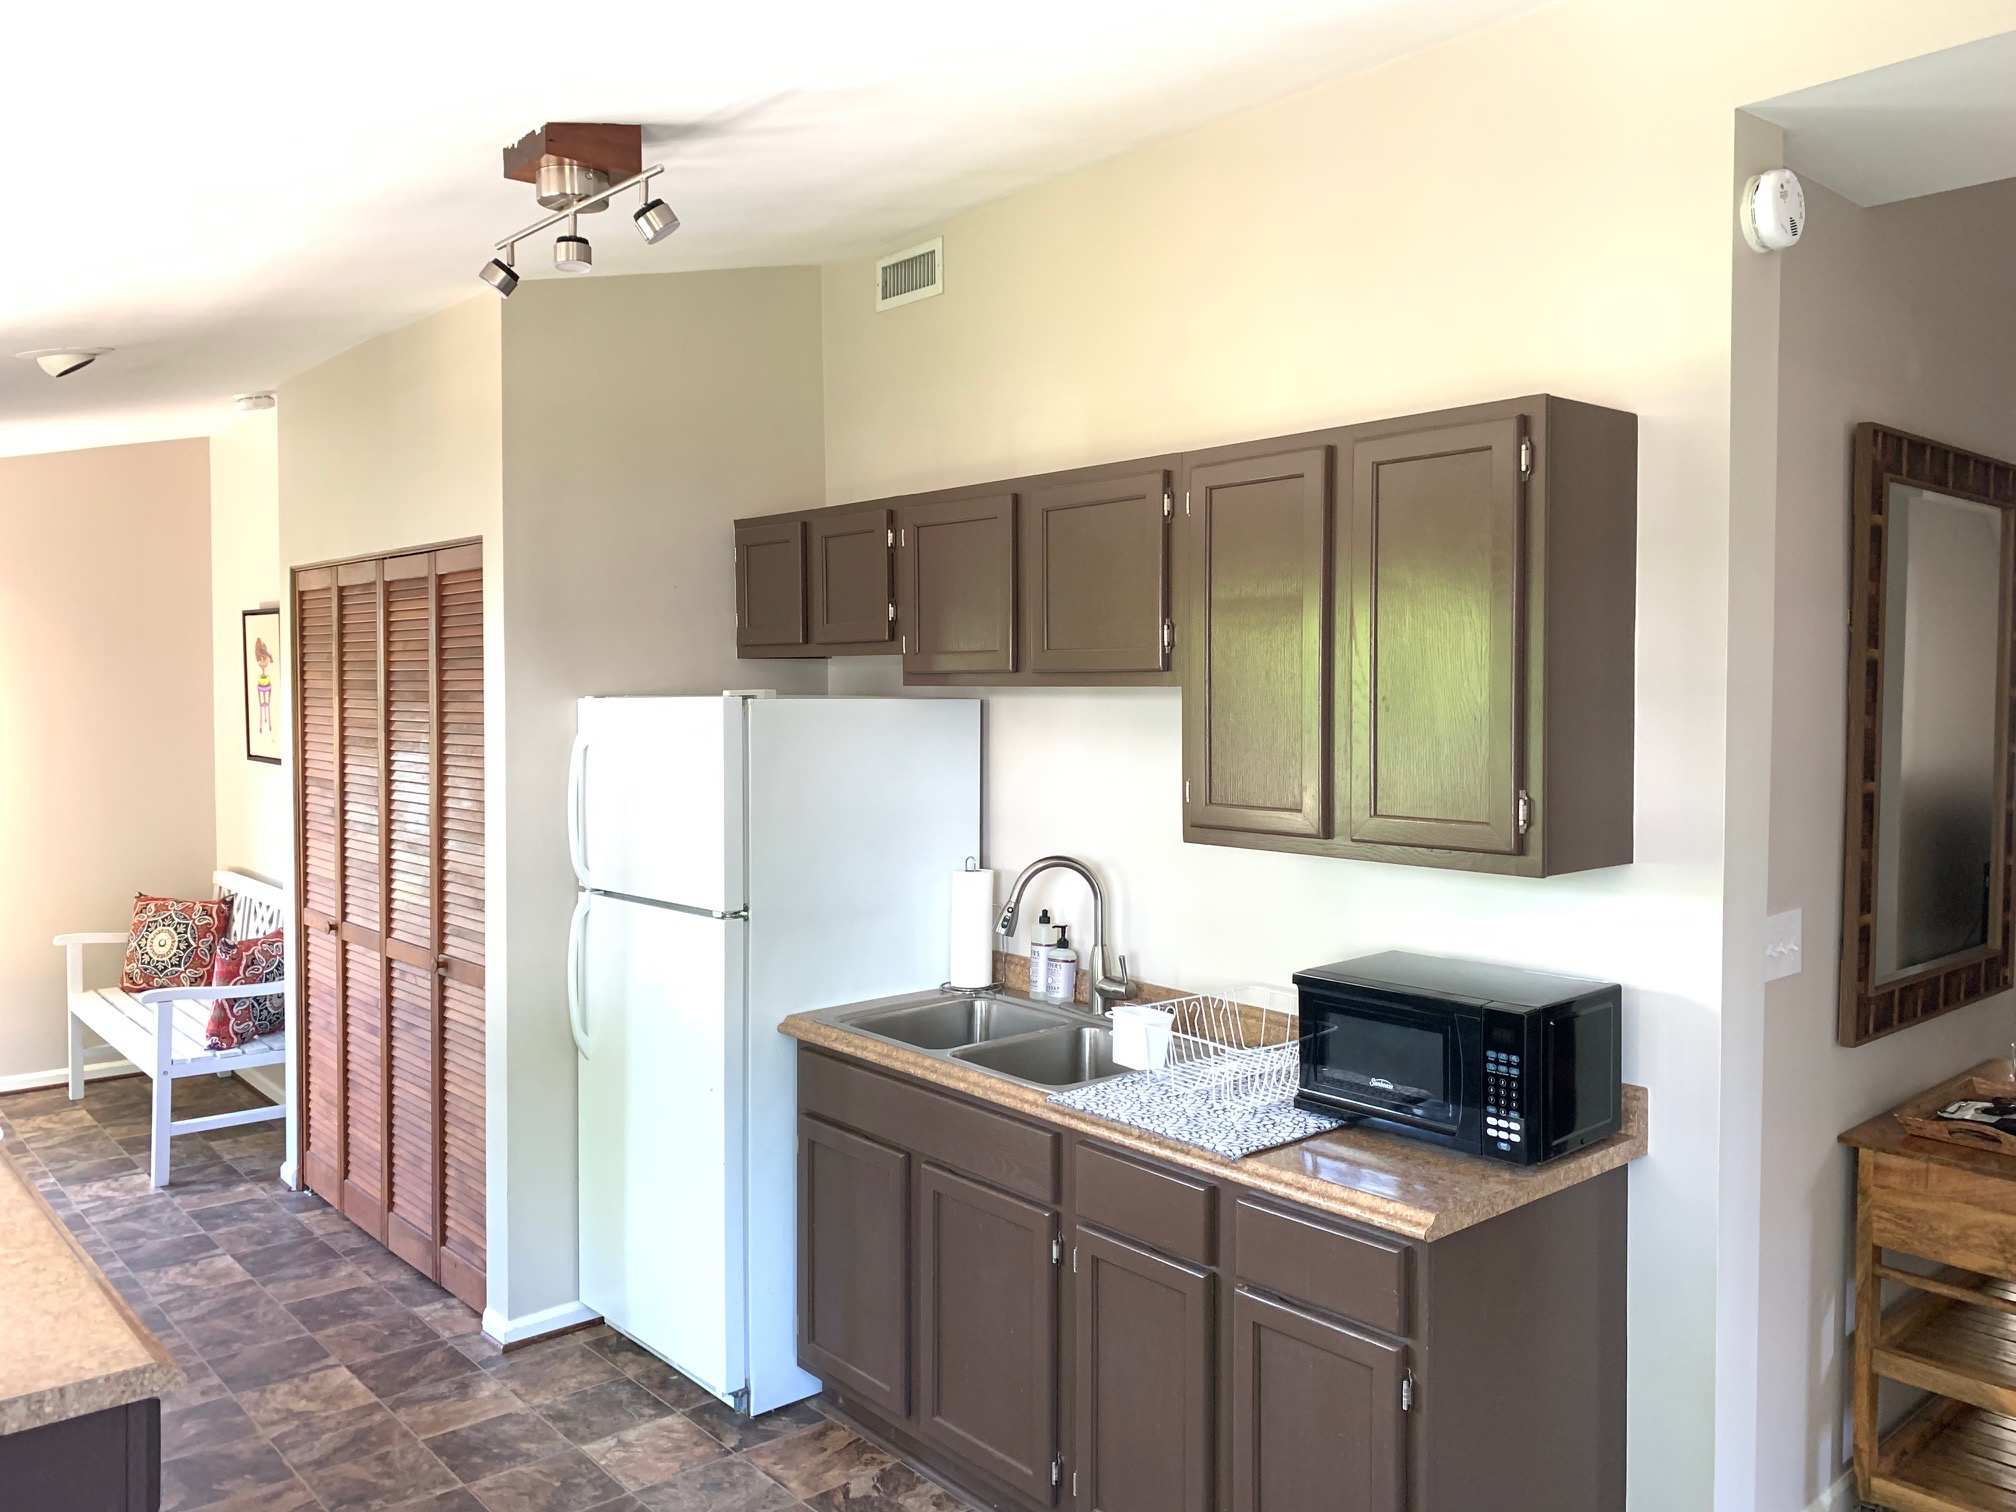 KITCHEN AND ENTRY.jpg